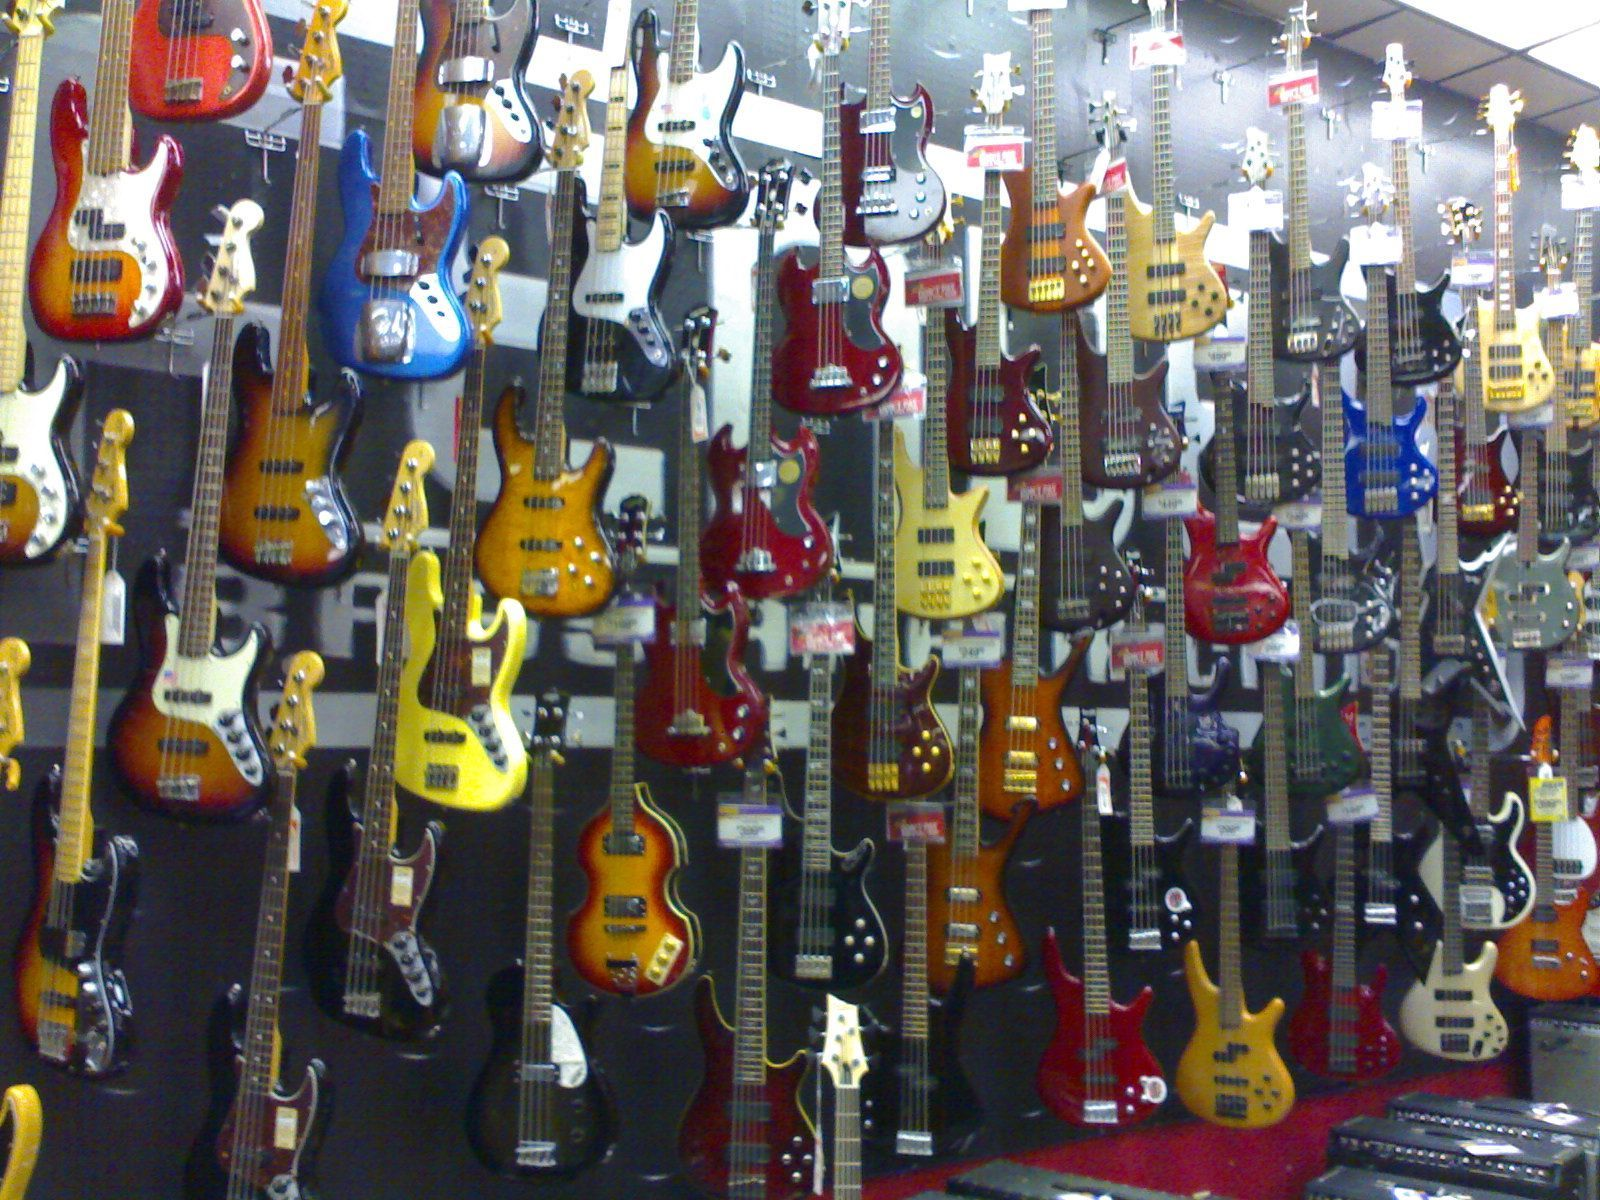 Best Music Stores Instruments In Houston Good Music Music Centers Houston